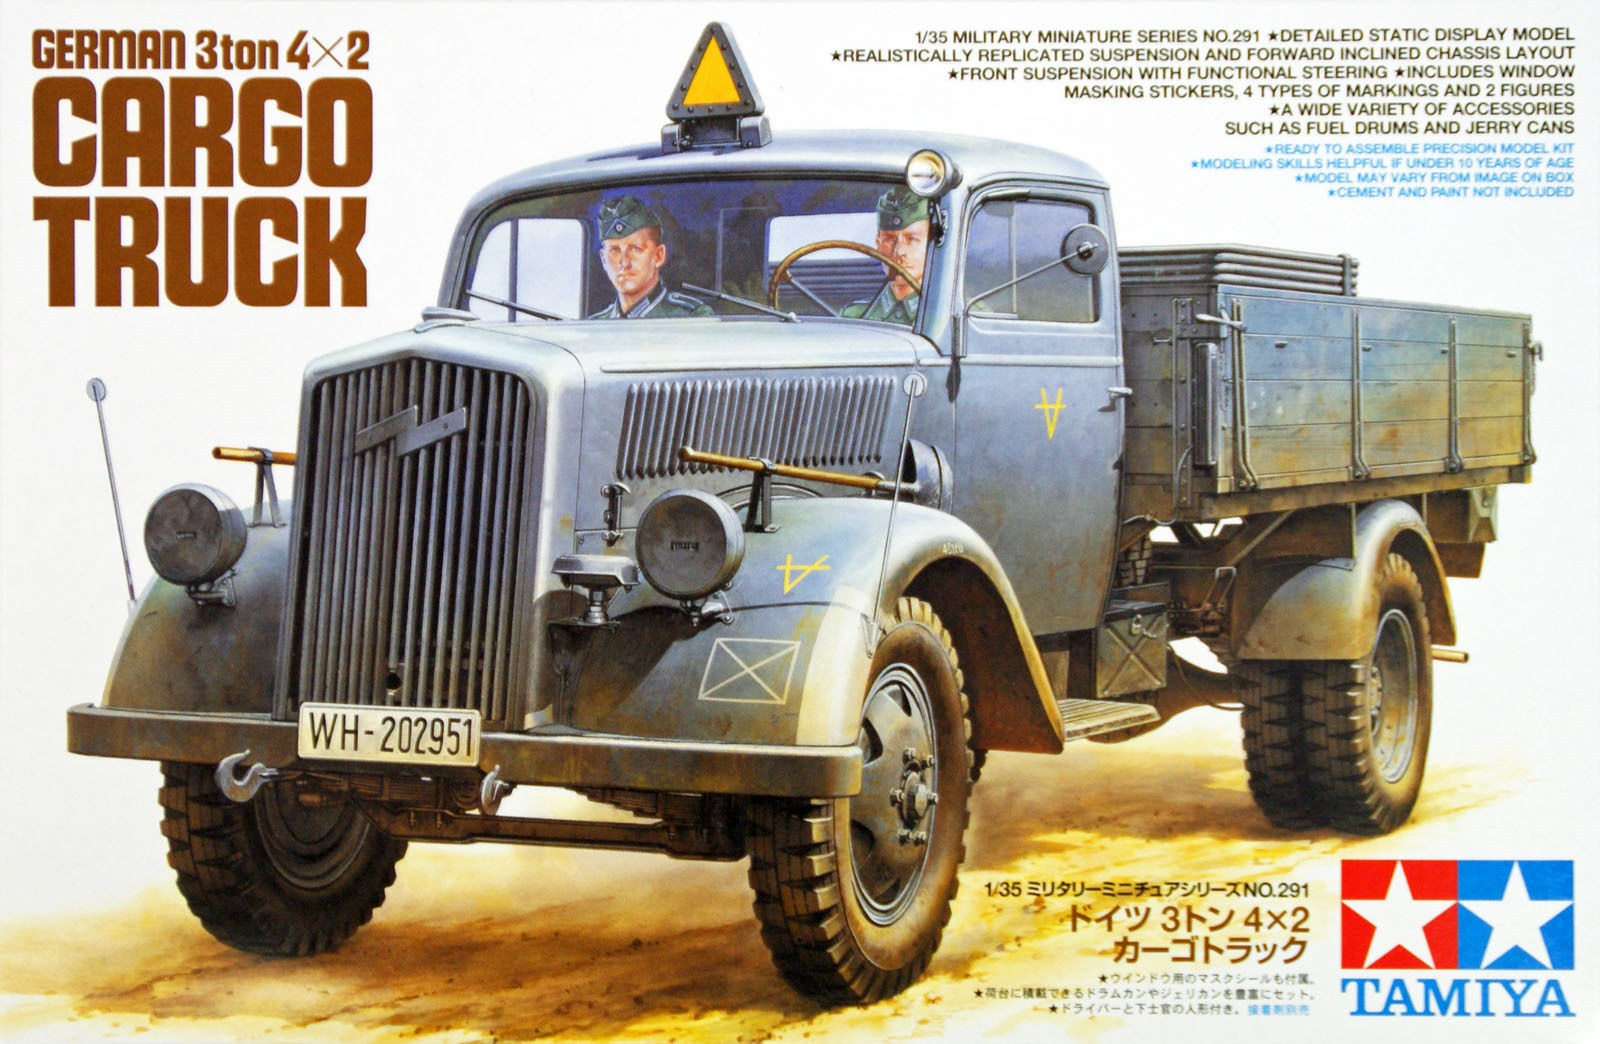 German 3Ton 4x2 Cargo Truck - Tamiya 35291 - plastic model kit - 1/35 scale